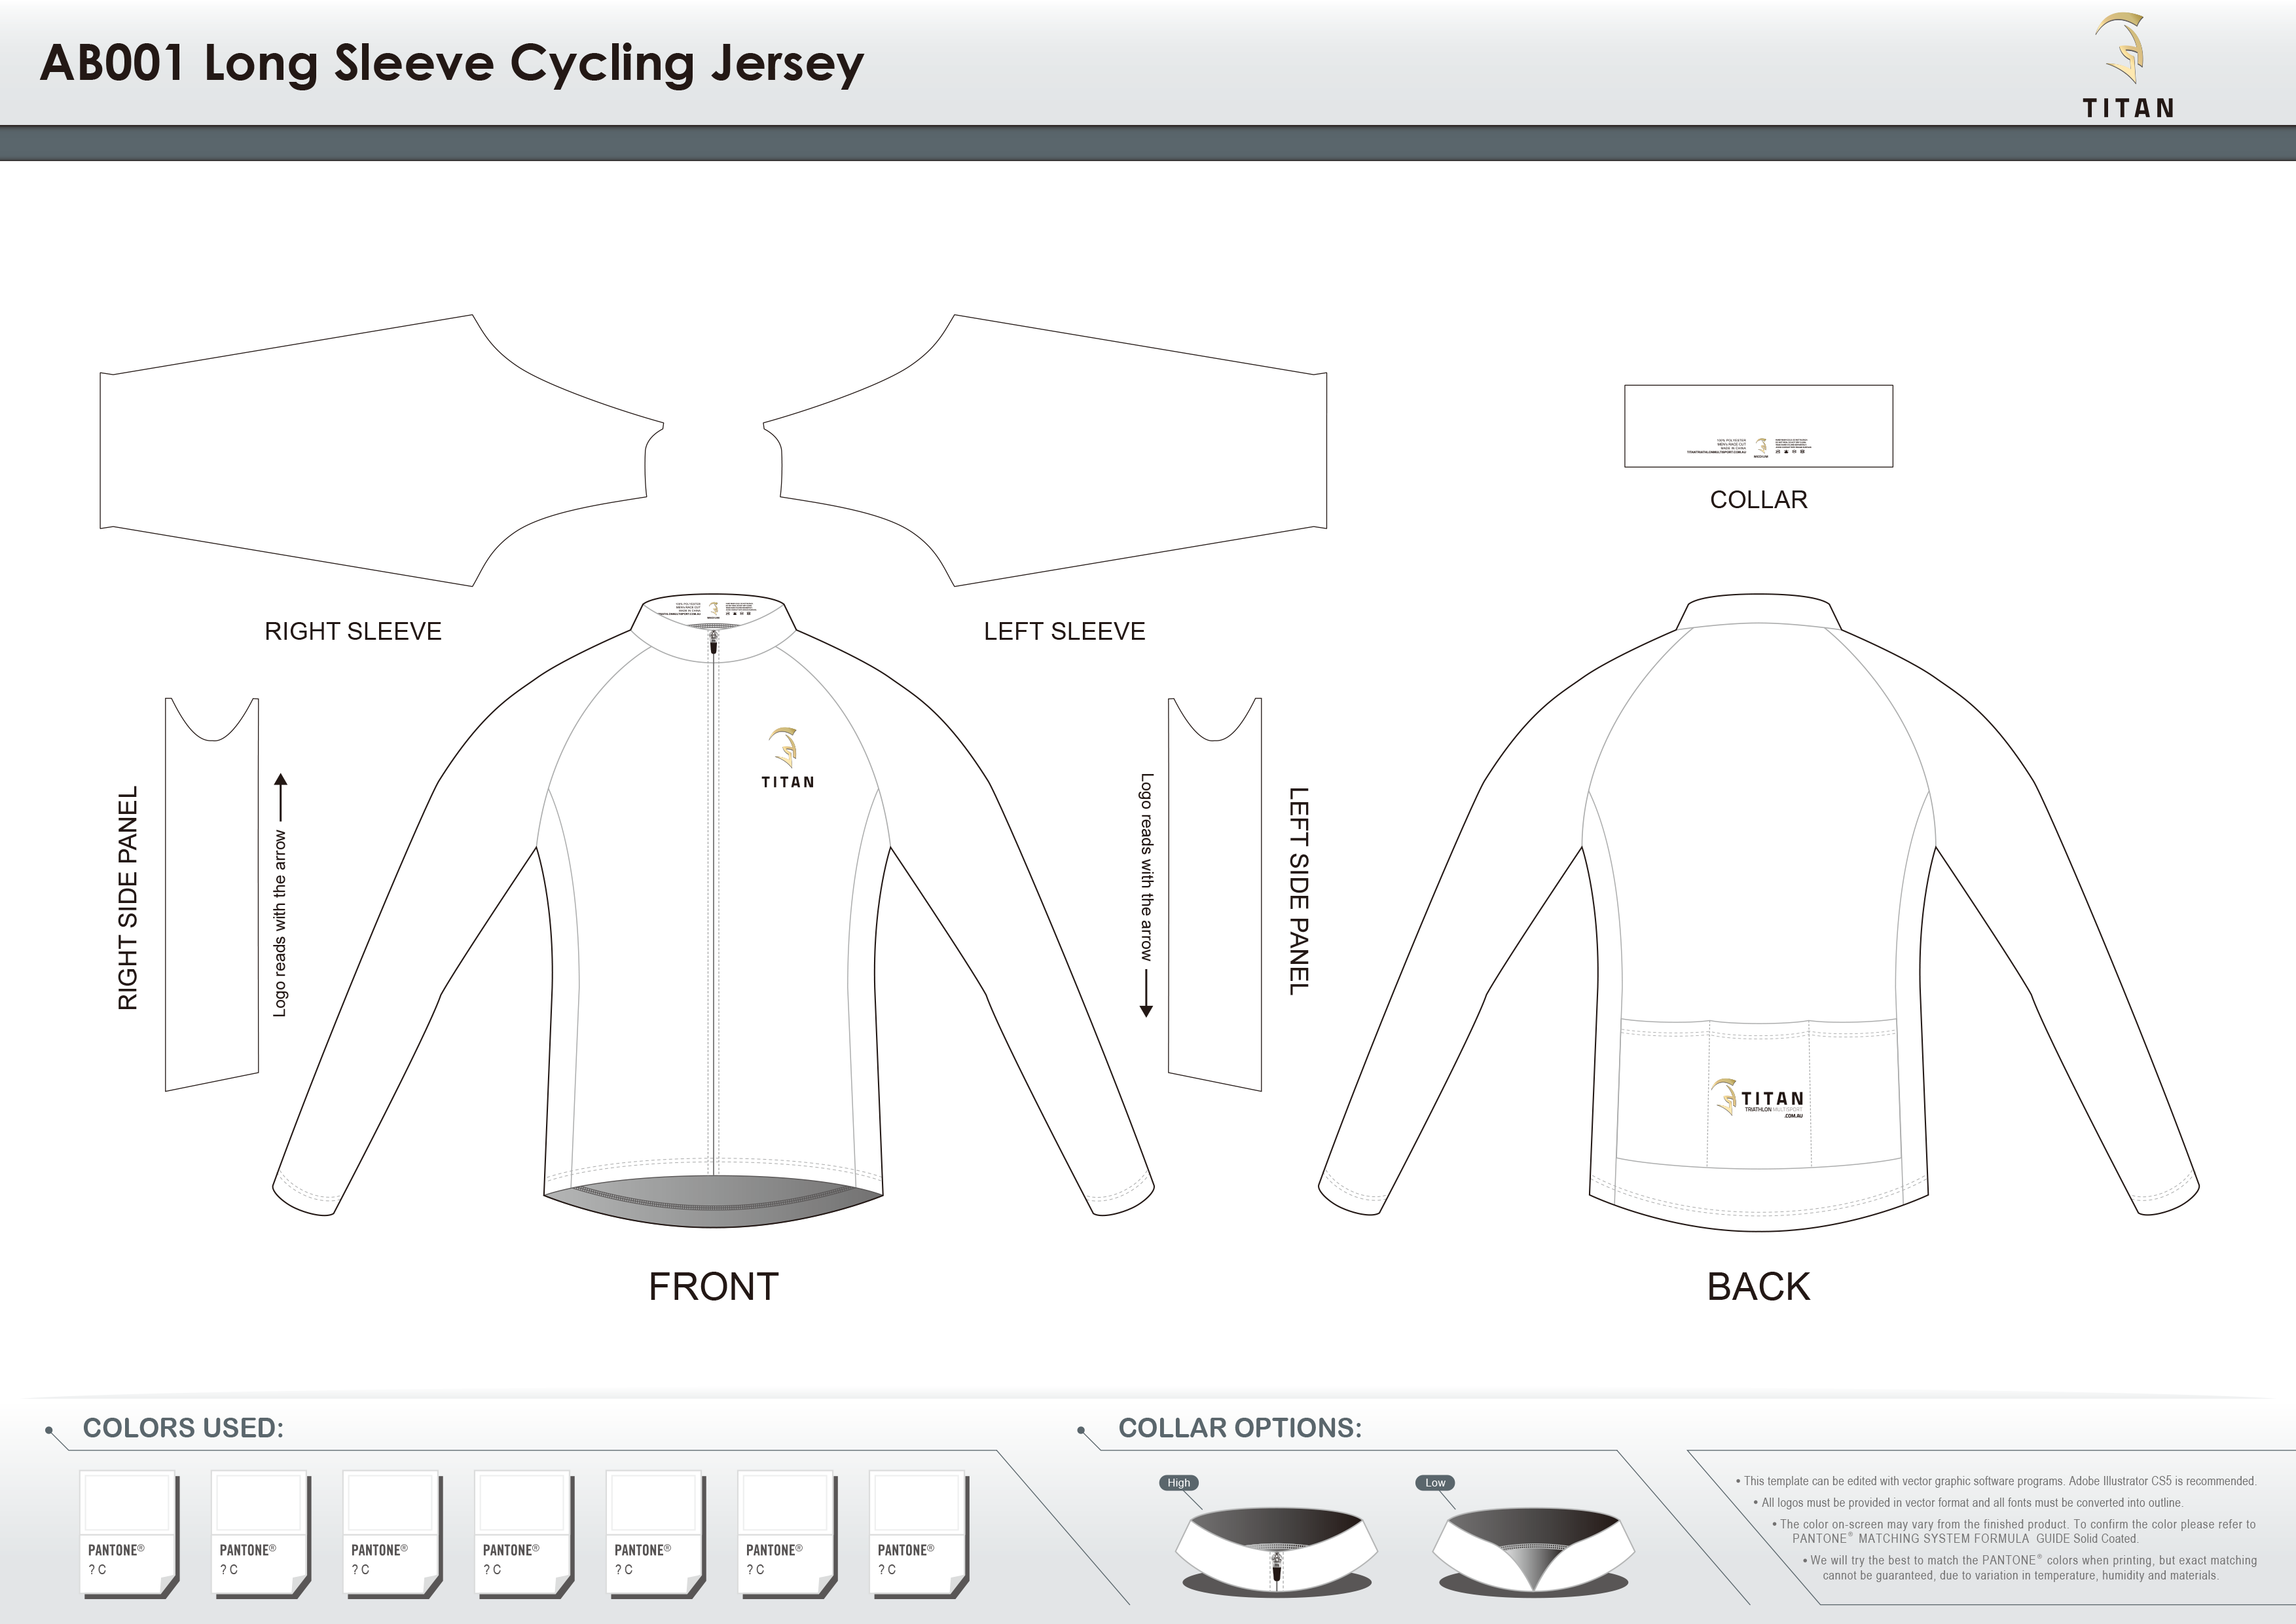 AB001 LS Cycling Jersey